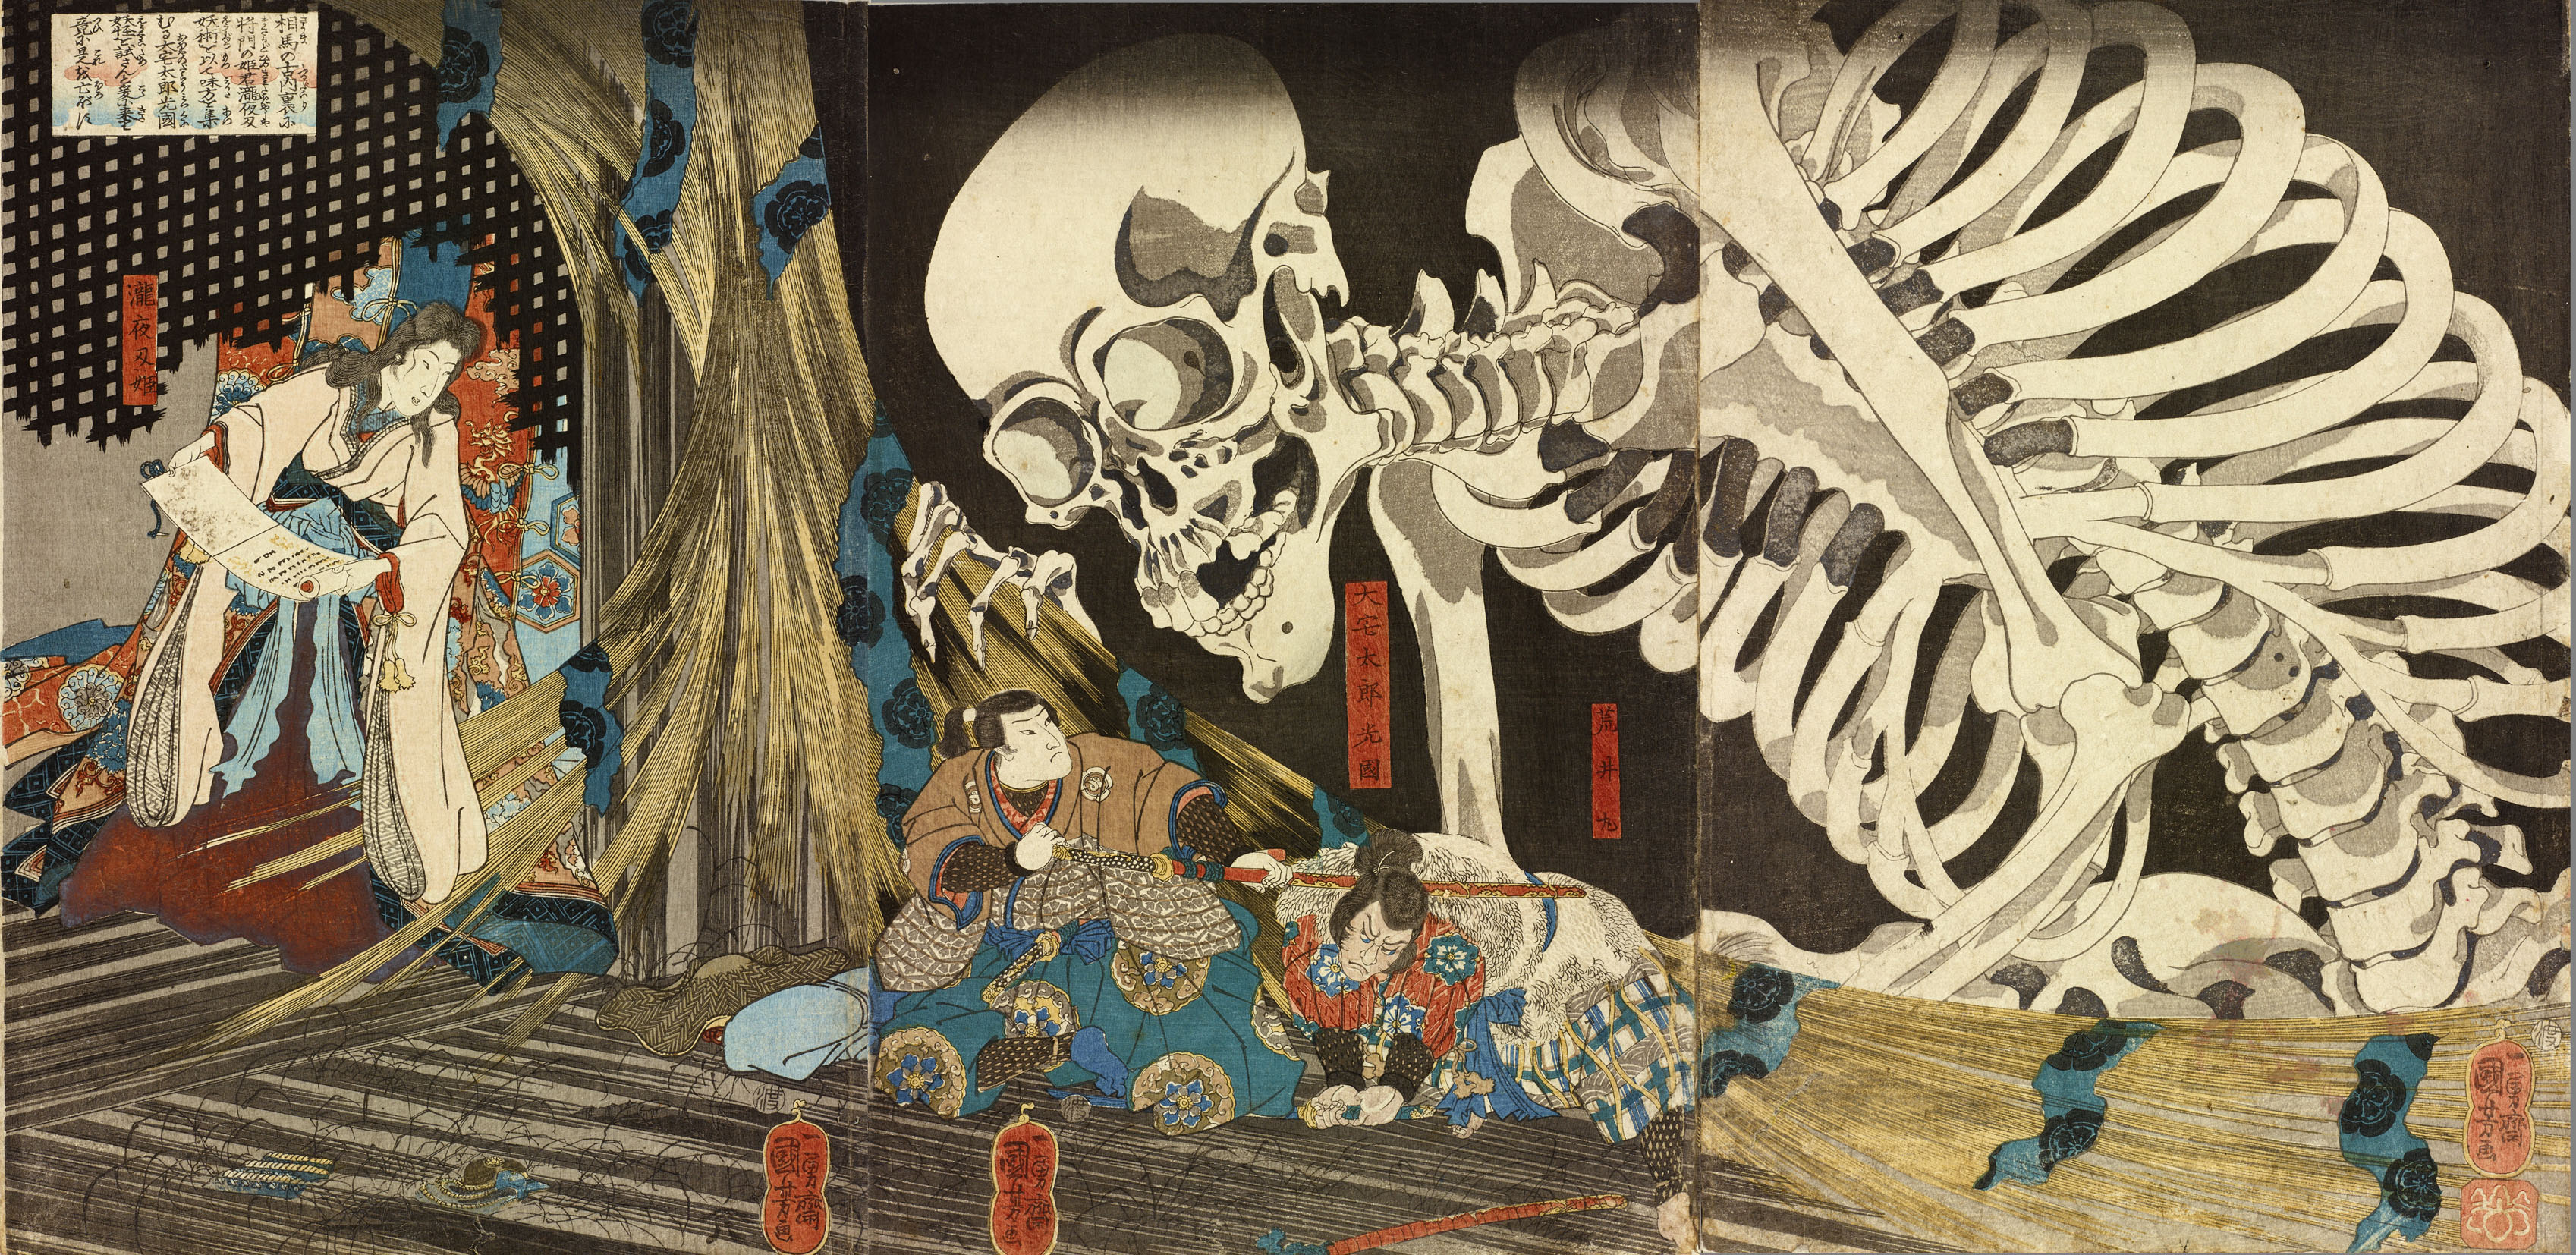 Bone chilling: Utagawa Kuniyoshi's 'Haunted Old Palace at Soma' (ca. 1845-46), in which a sorceress draws forth a giant skeleton to attack a warrior.  | PRIVATE COLLECTION